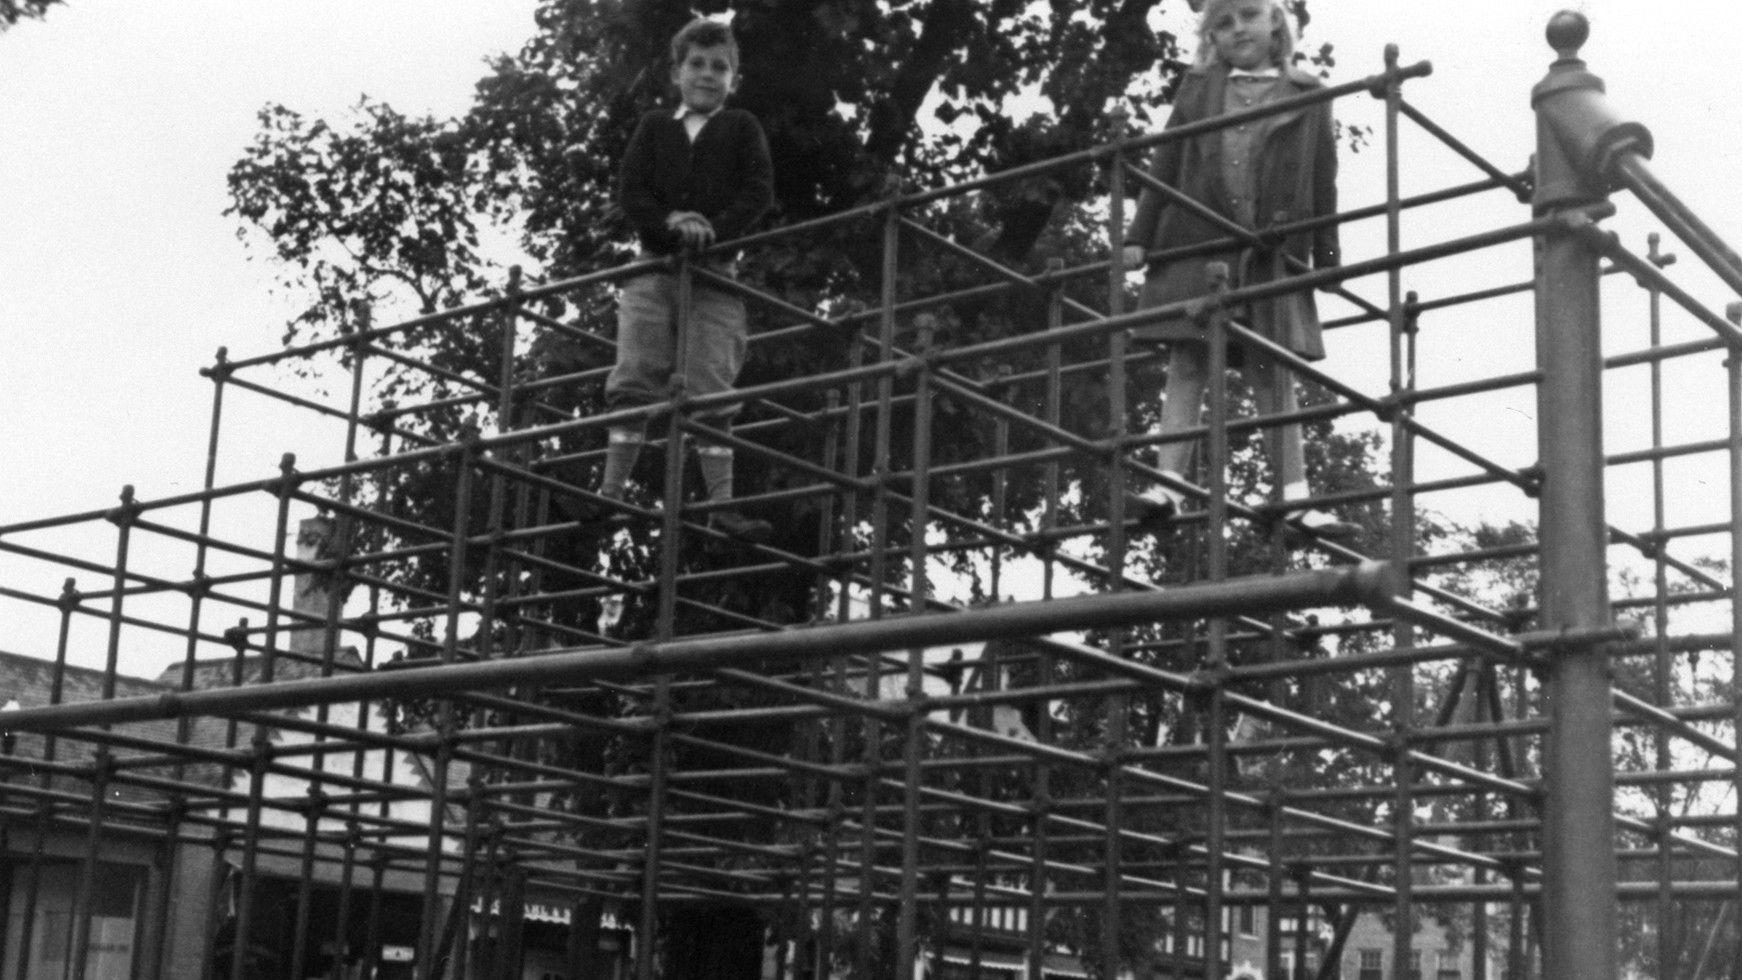 In Winnetka, the jungle gym was born. A look at its evolution, from sky-high rusted pipes to soft, risk-averse playgrounds